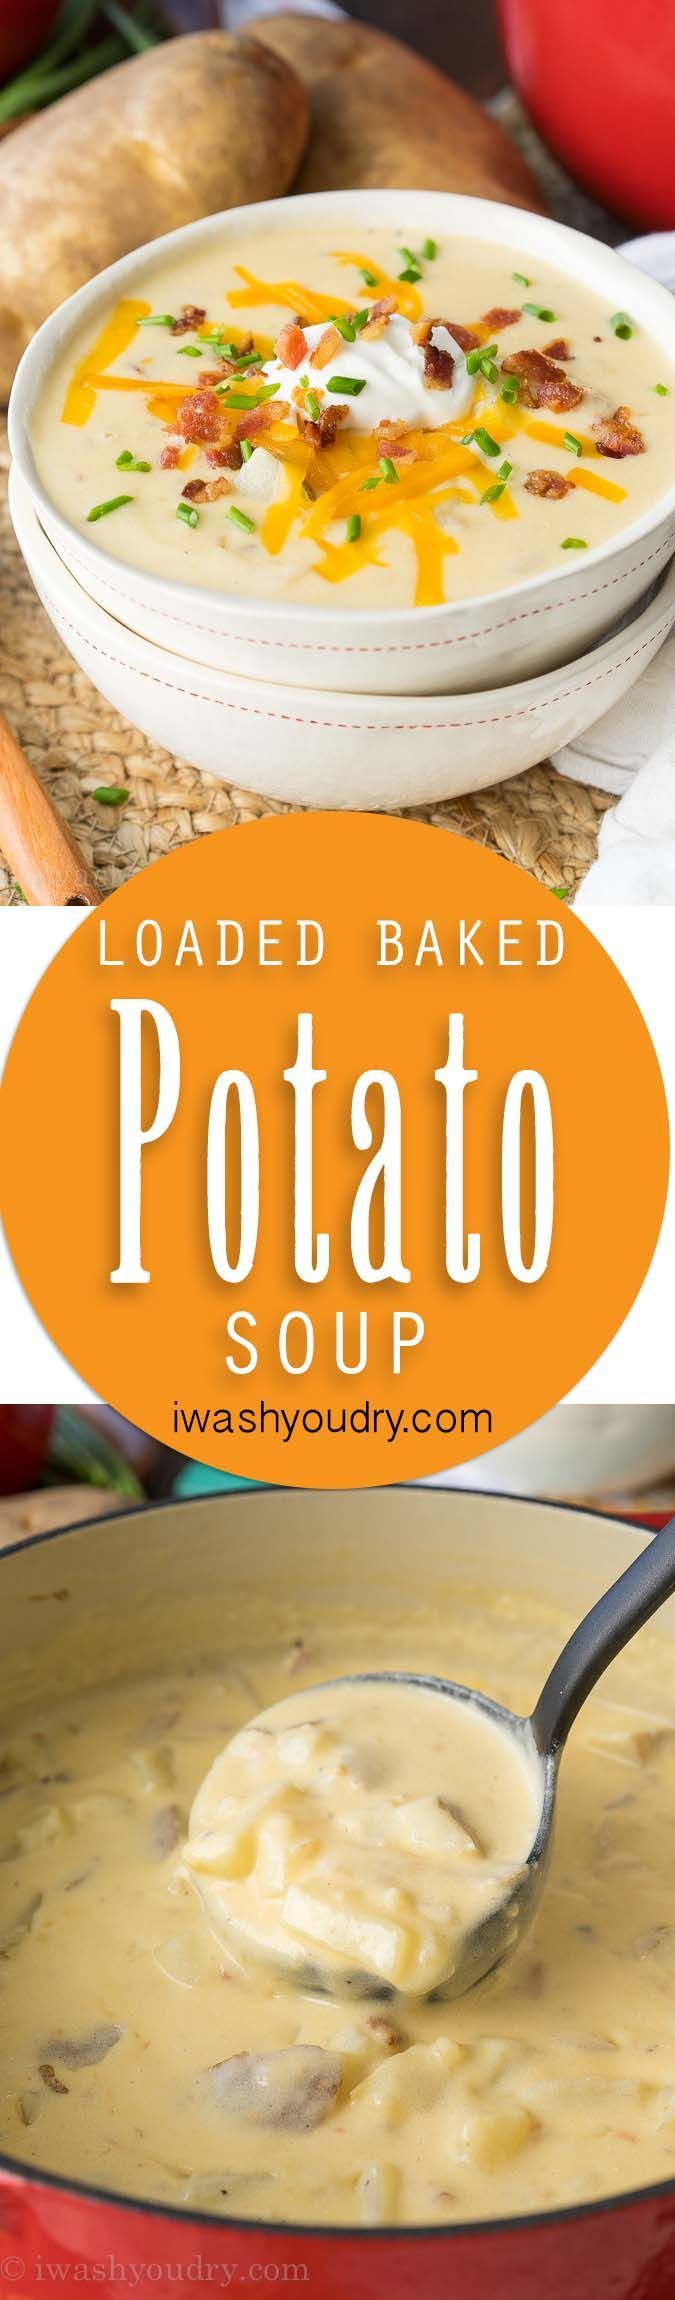 This Loaded Baked Potato Soup is a super quick and creamy version. My whole family devoured this delicious recipe!